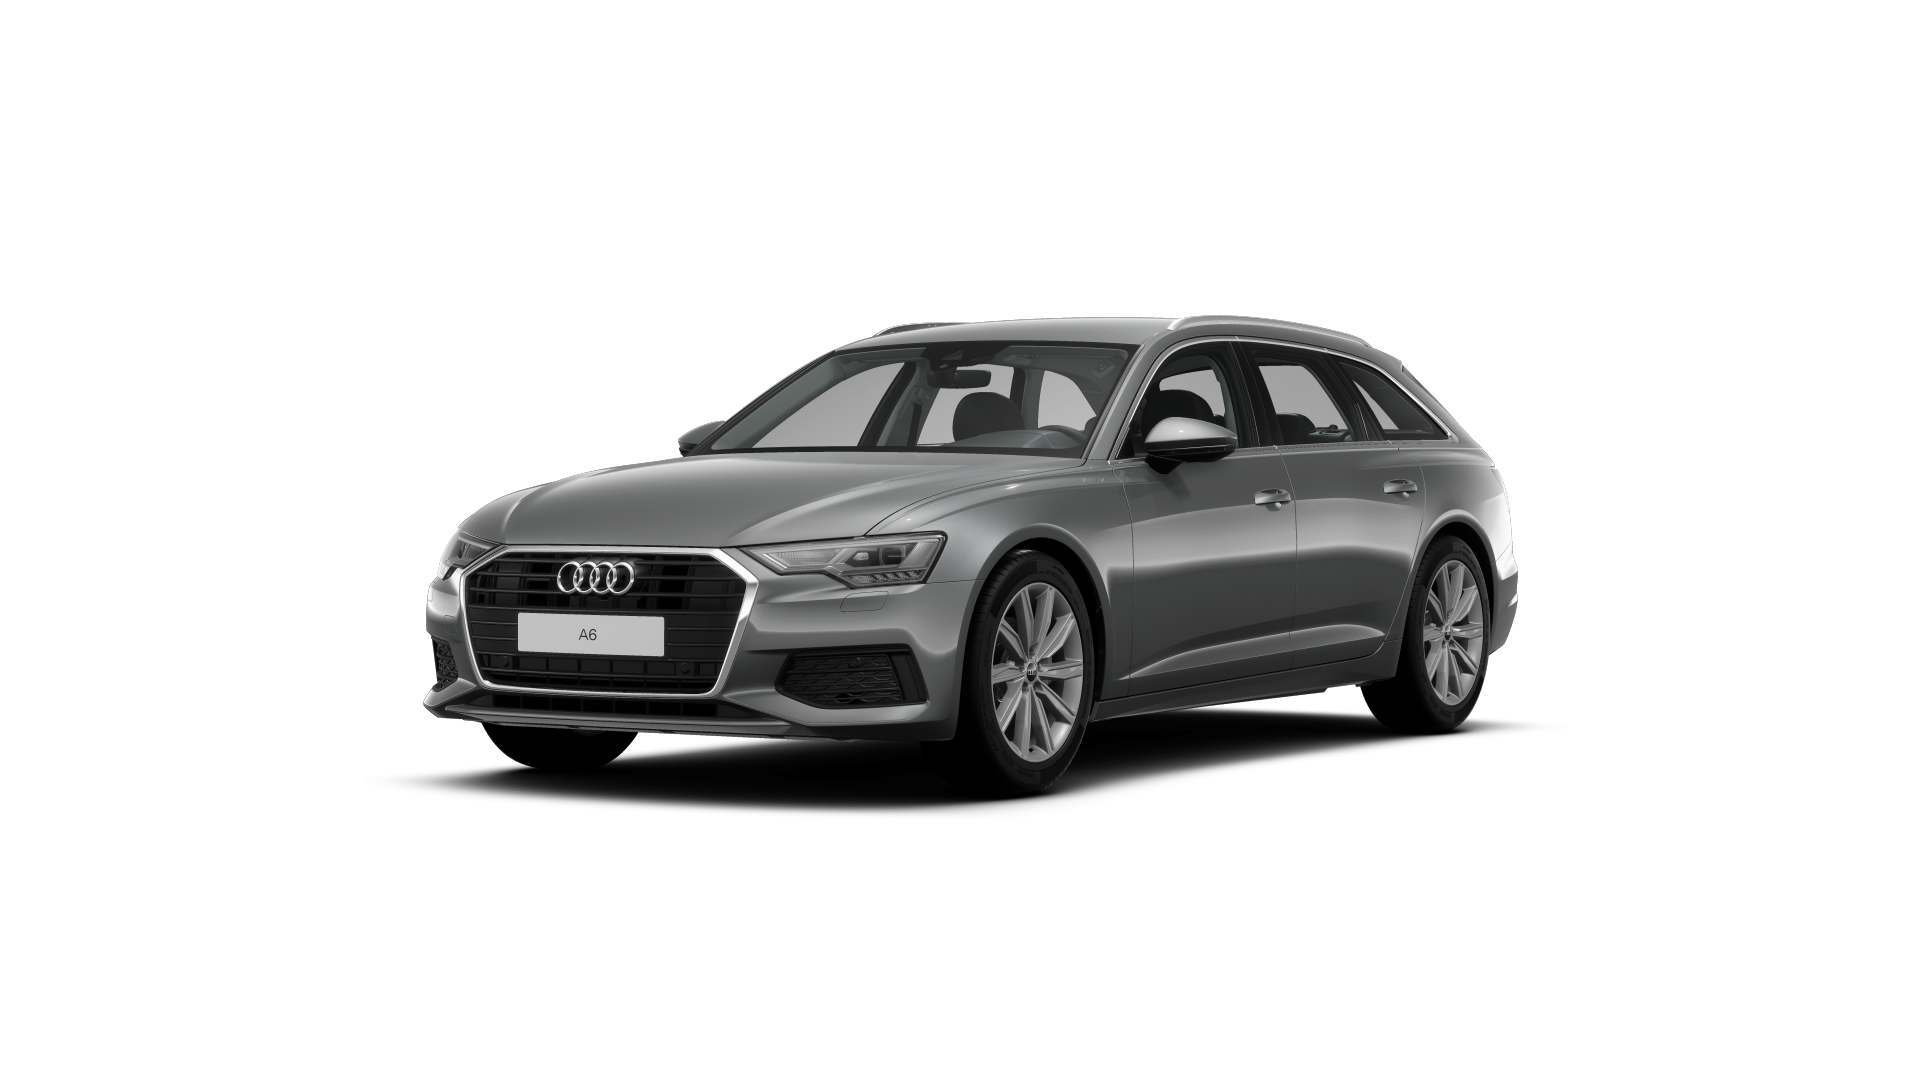 Audi A6 Avant Business Edition 35 TDI  120(163) kW(pk) S tronic